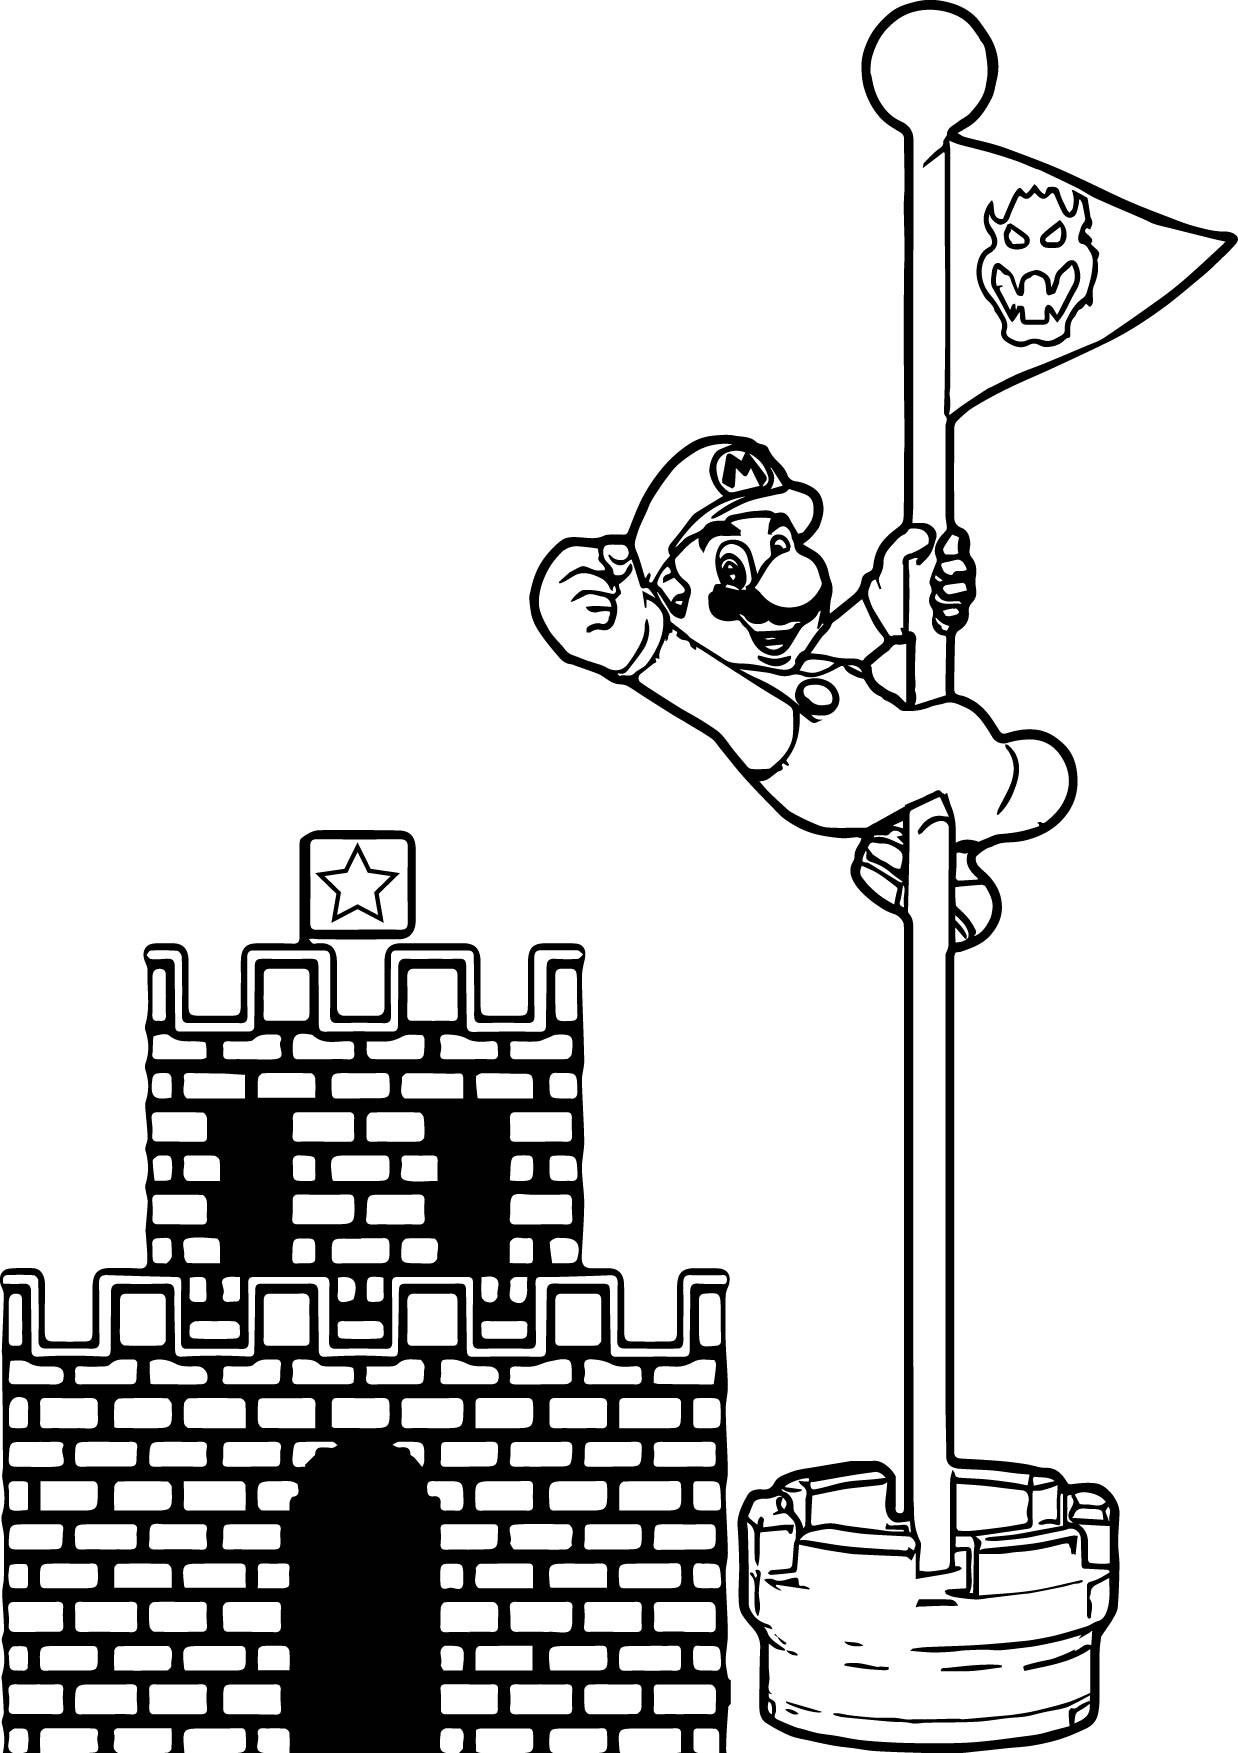 Super Heroes Coloring Pages Capricus Gallery Of Toad Mario Drawing at Getdrawings Gallery